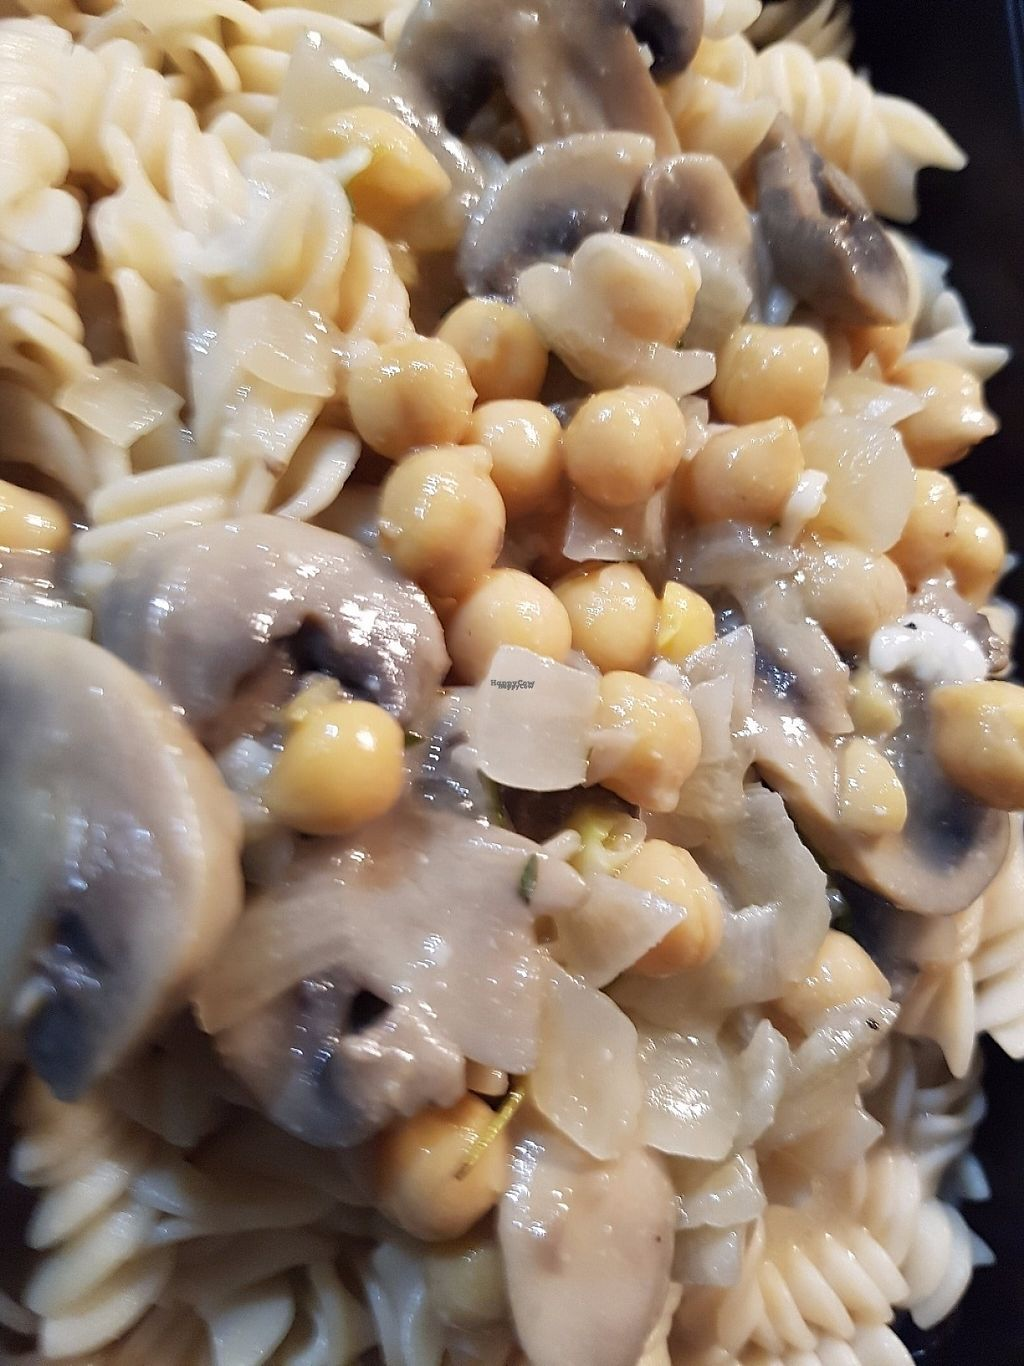 """Photo of Vegan on the Go  by <a href=""""/members/profile/JessicaAliza"""">JessicaAliza</a> <br/>CHICKPEA STROGANOFF <br/> February 9, 2017  - <a href='/contact/abuse/image/86906/224576'>Report</a>"""